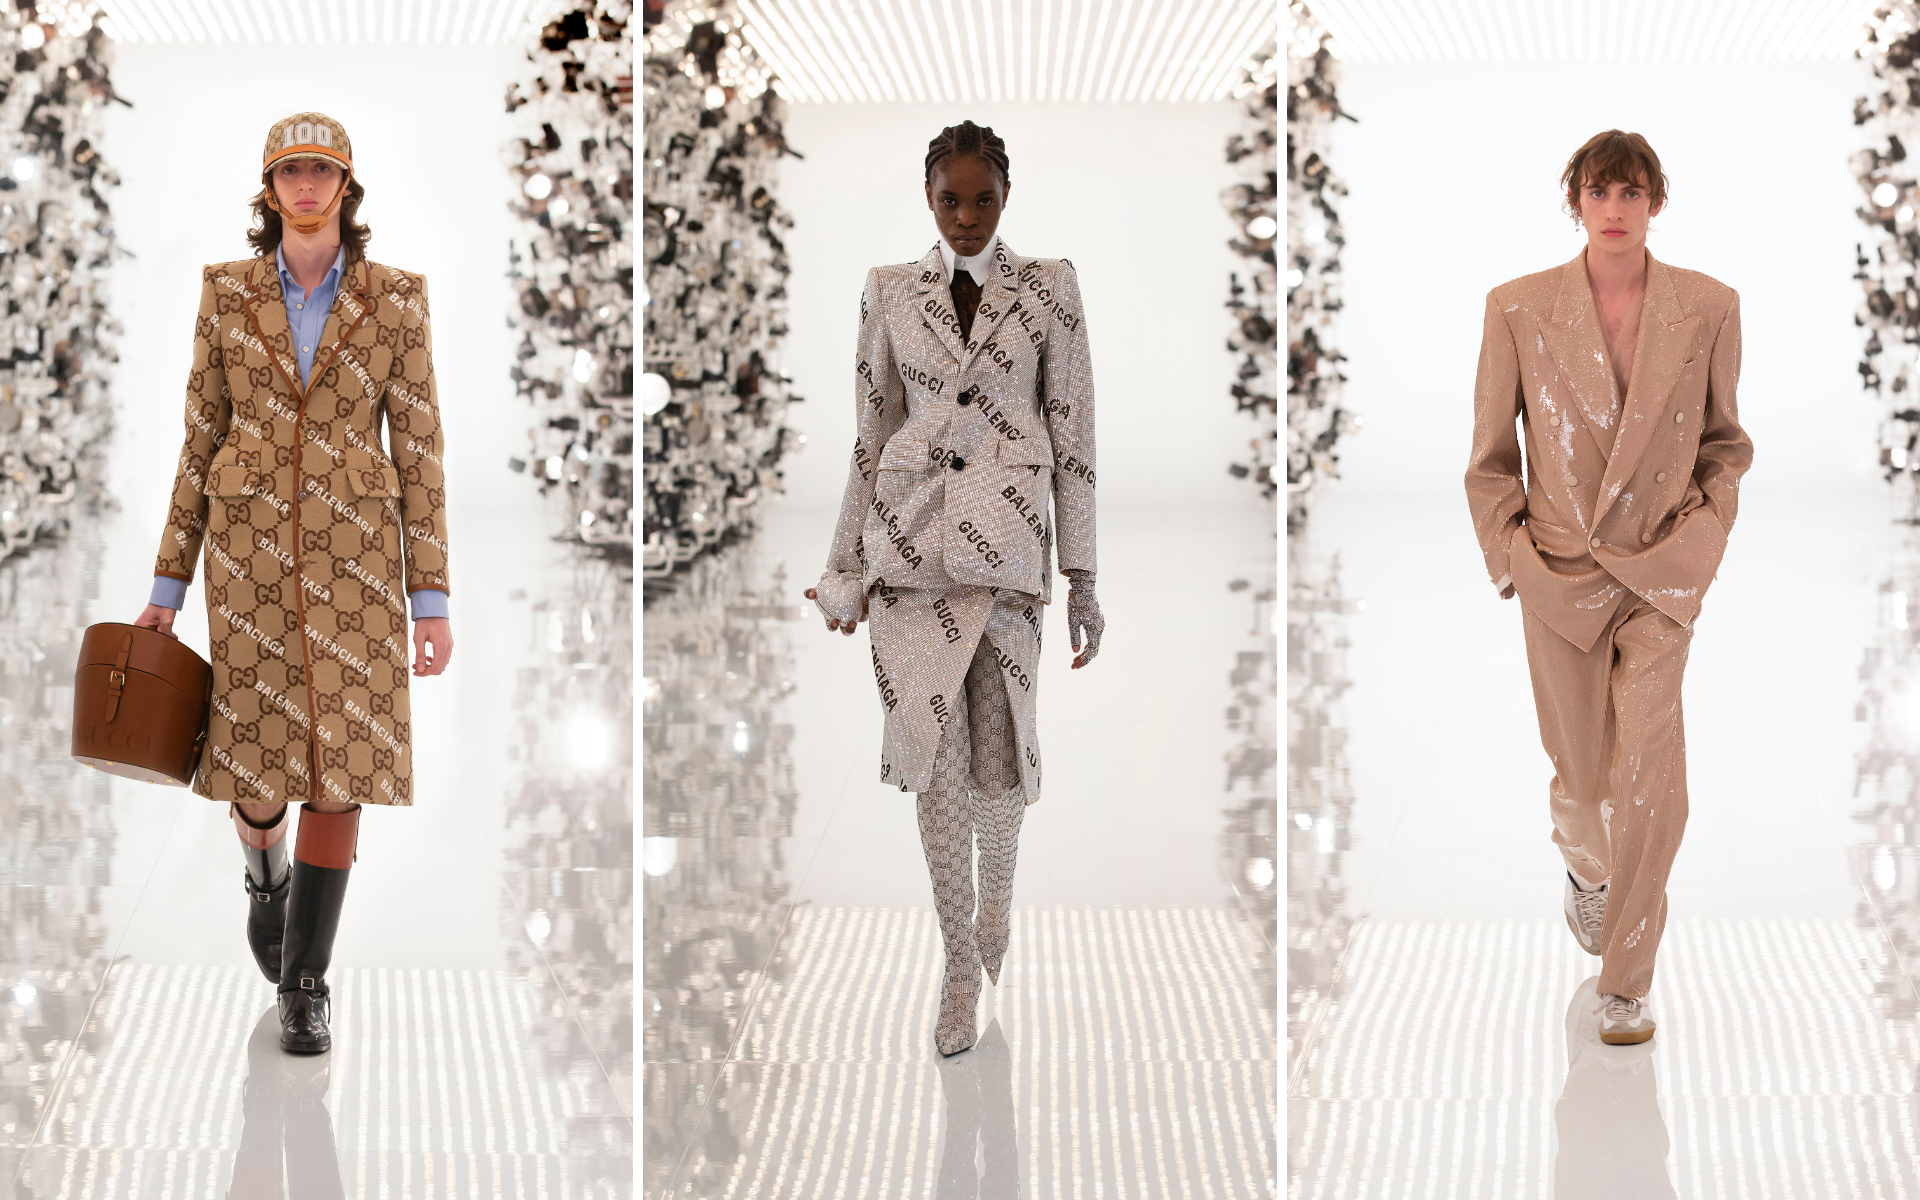 The Gucci Aria show features an exciting collaboration between Gucci and Balenciaga